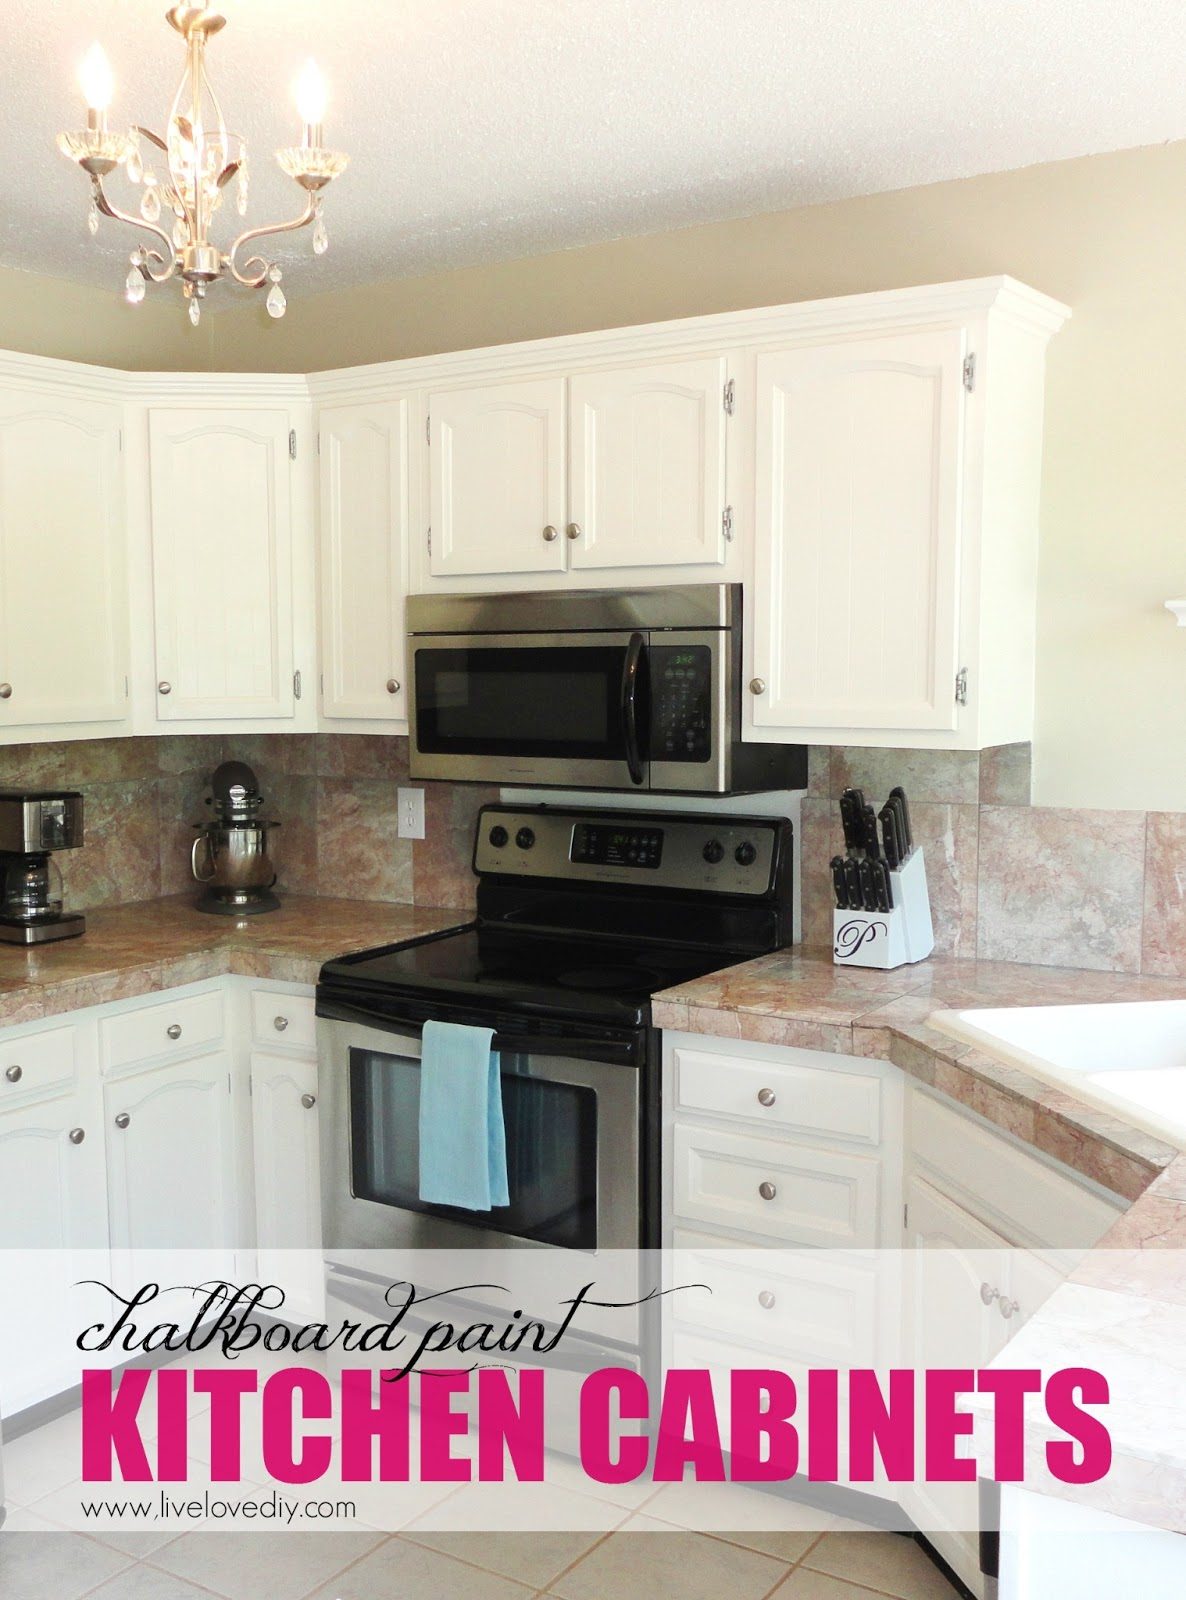 Livelovediy the chalkboard paint kitchen cabinet makeover for Painting your kitchen cabinets